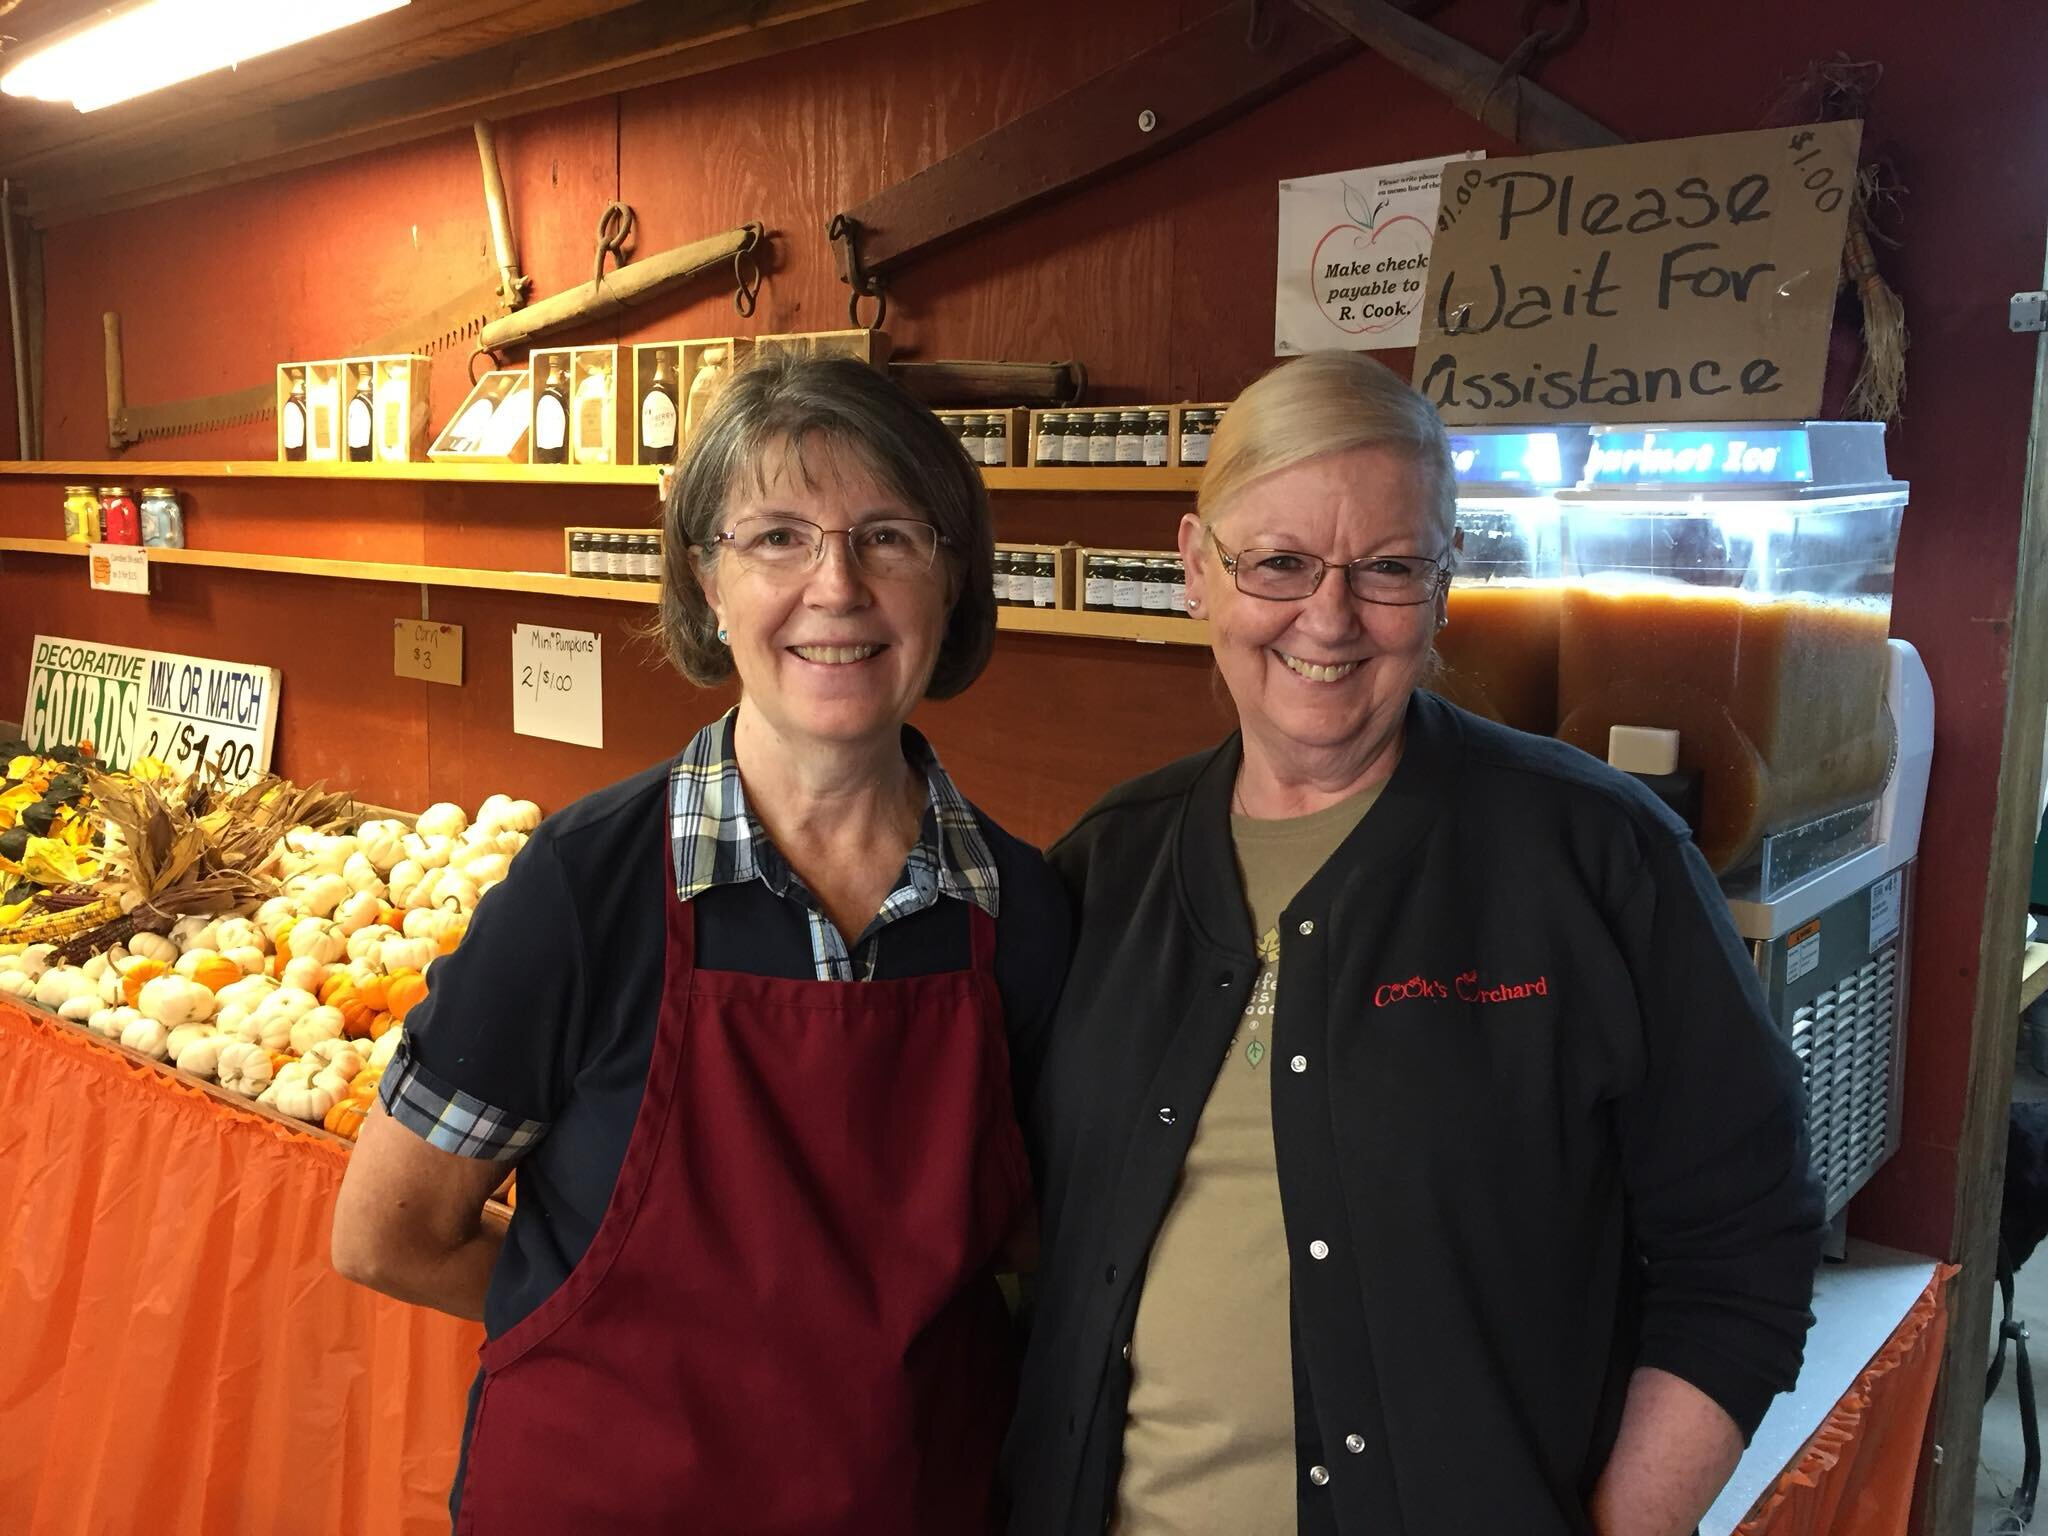 Cook's Orchard shop is fully stocked with fall goodies, including apple cider slushies.